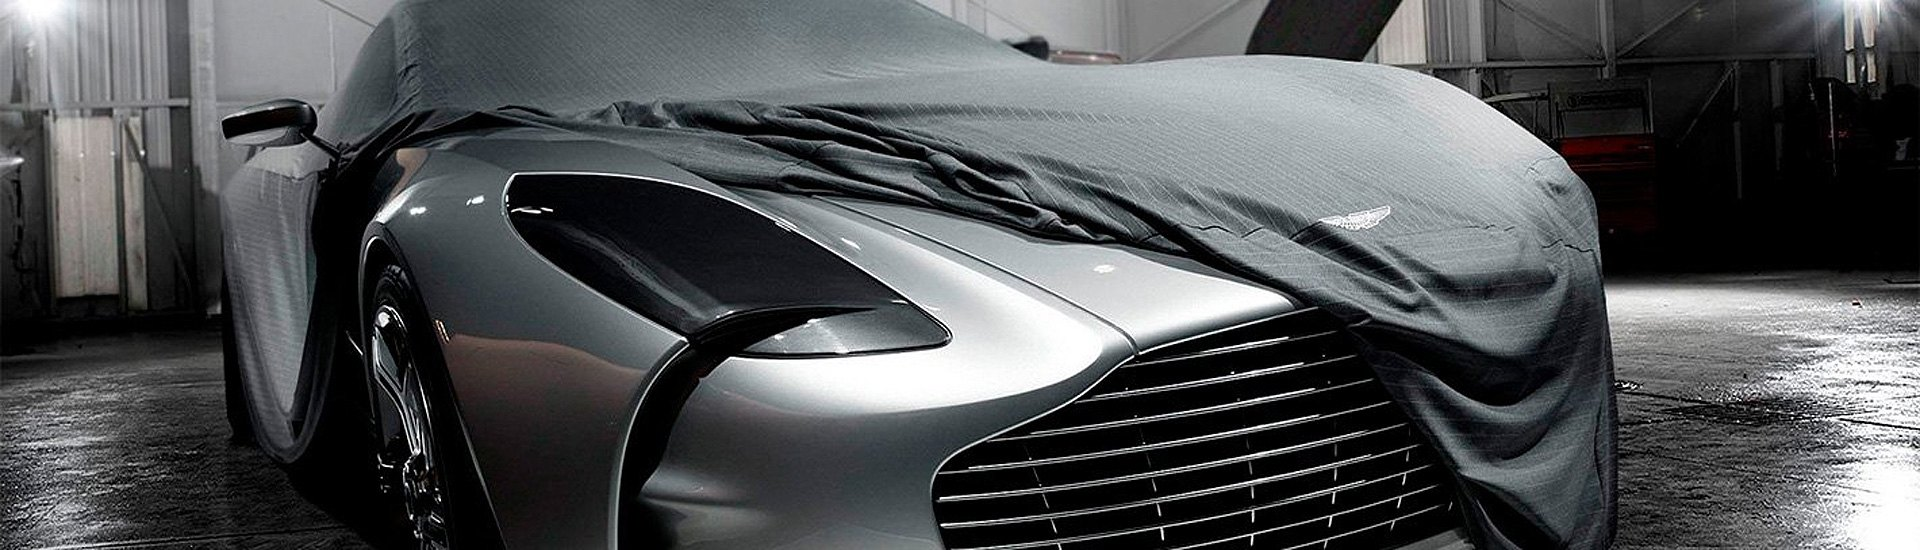 Five Reasons To Use An Indoor Cover On Your Garaged Car